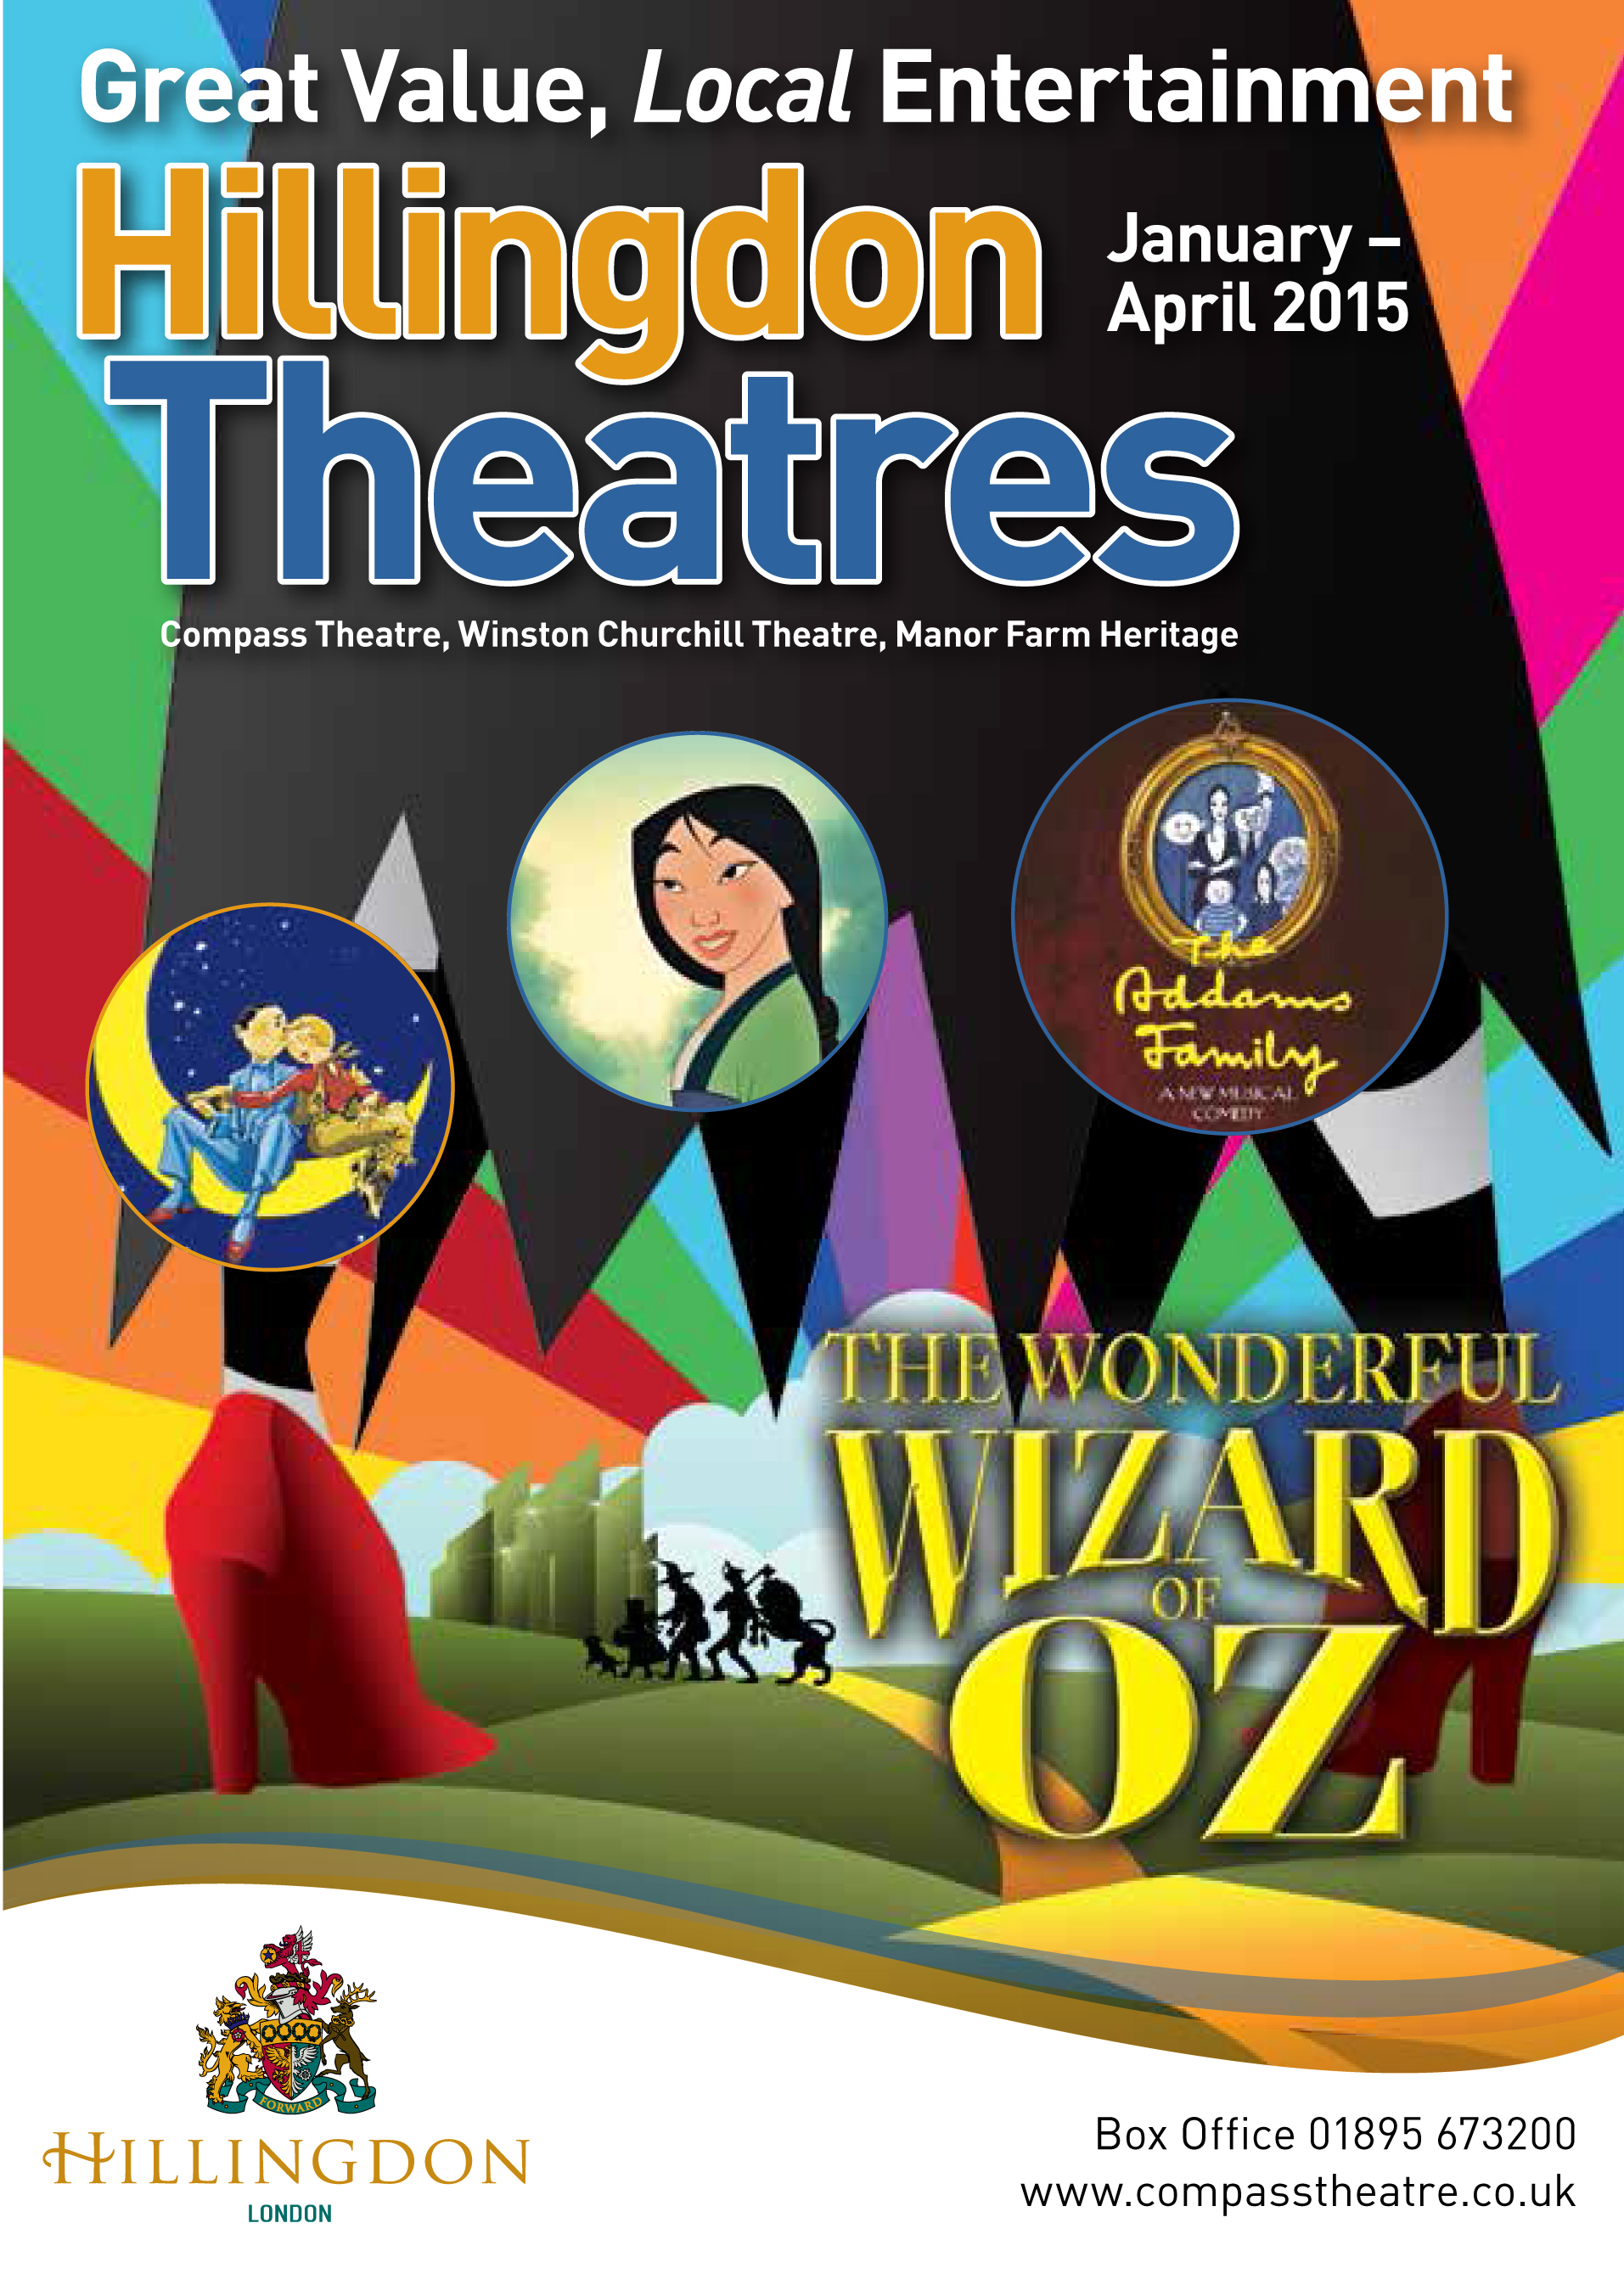 HillingdonTheatres Season Brochure 2015 Jan to Apr Cover